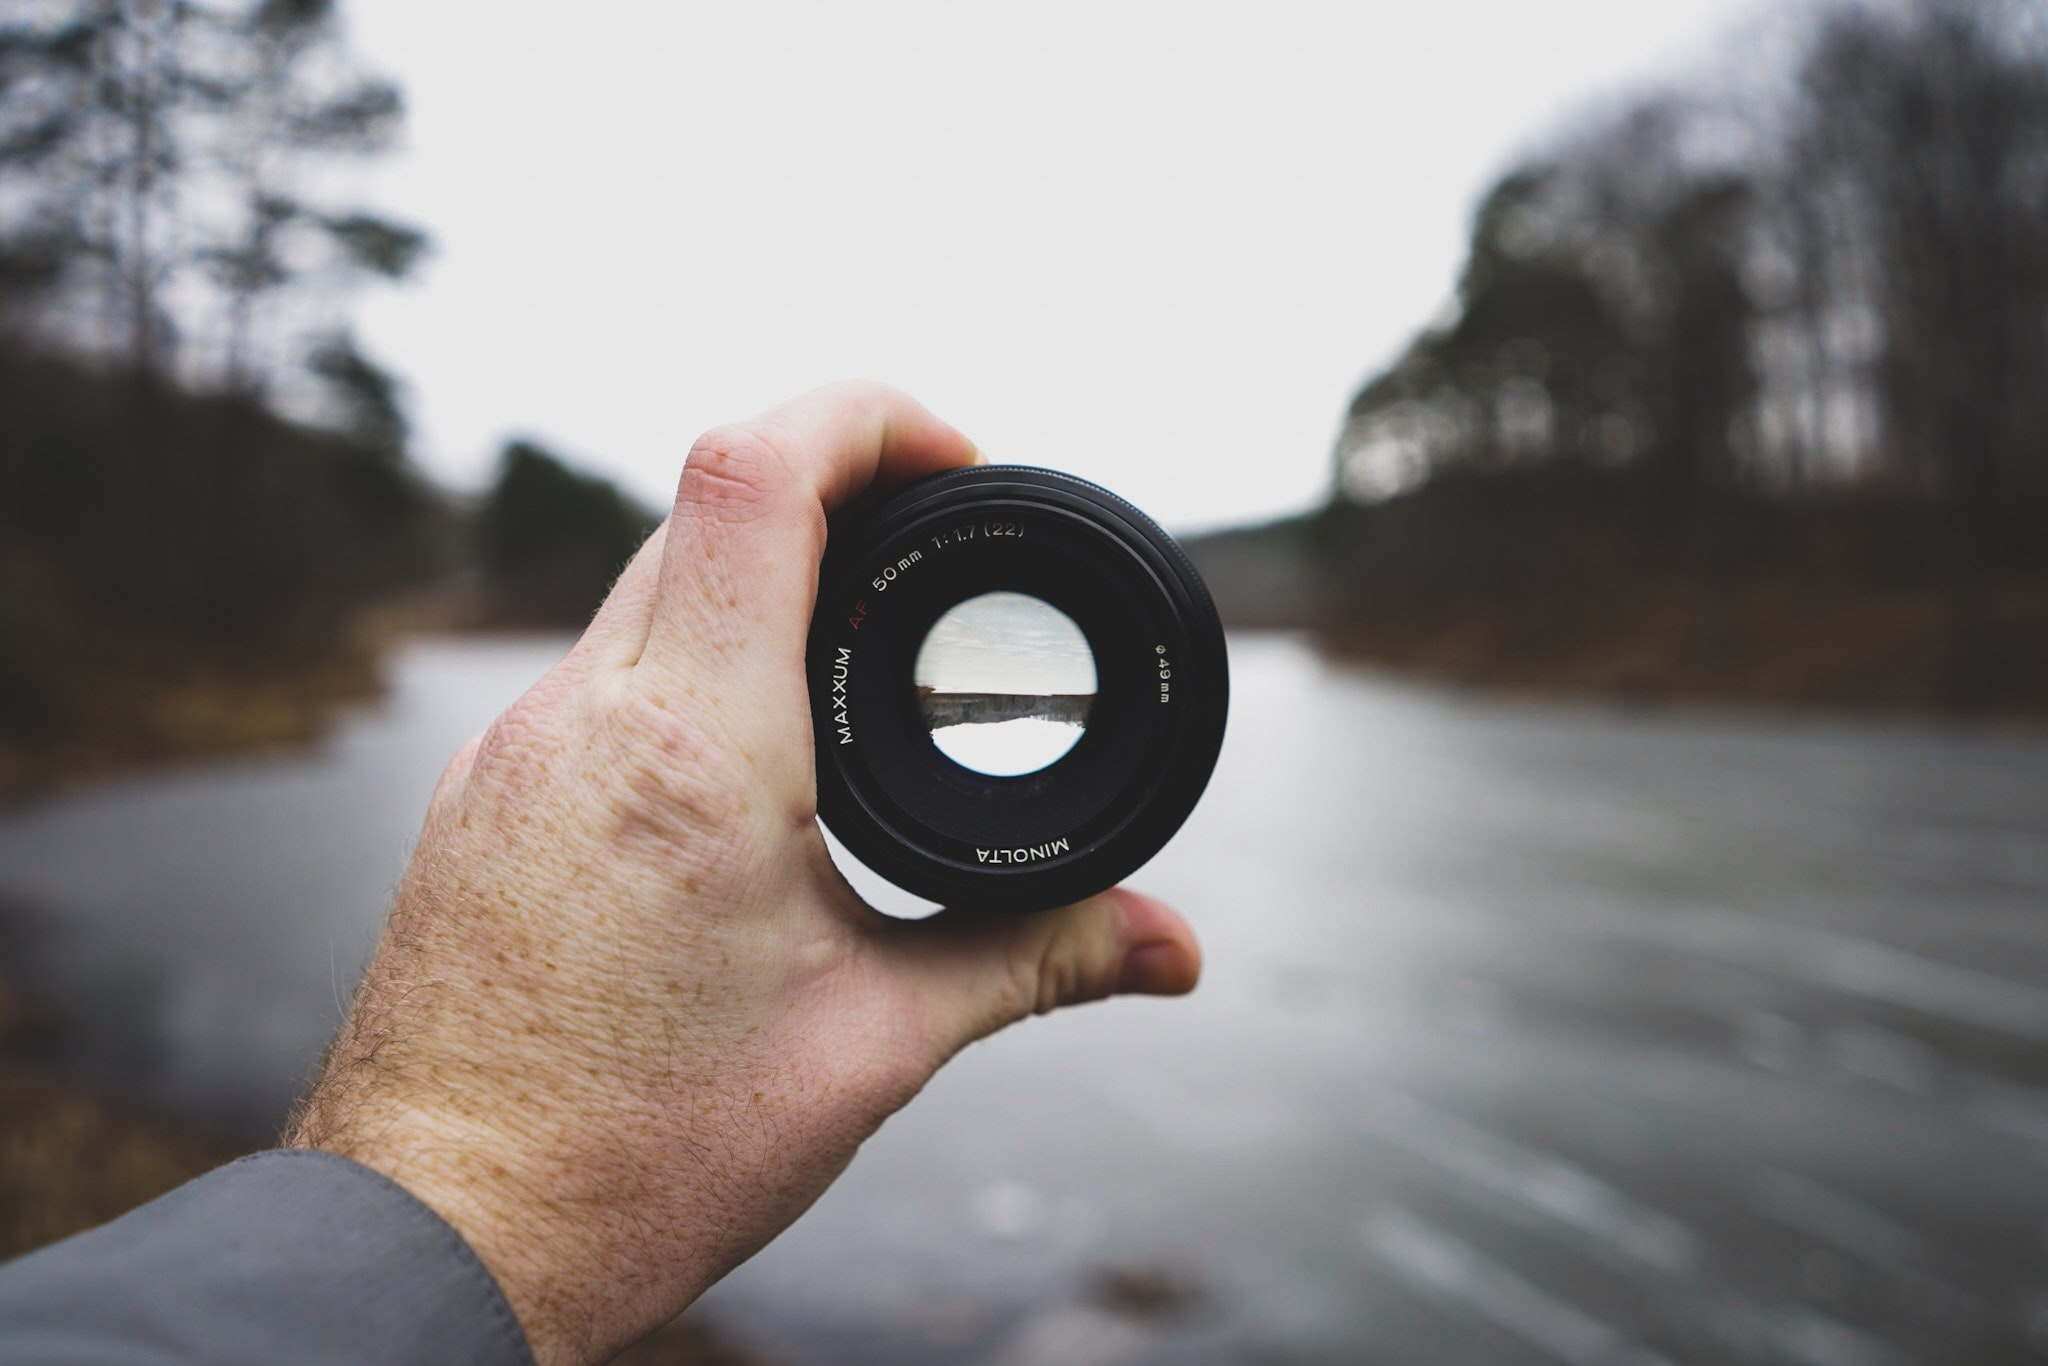 selective focus photo of person's hand holding black camera lens